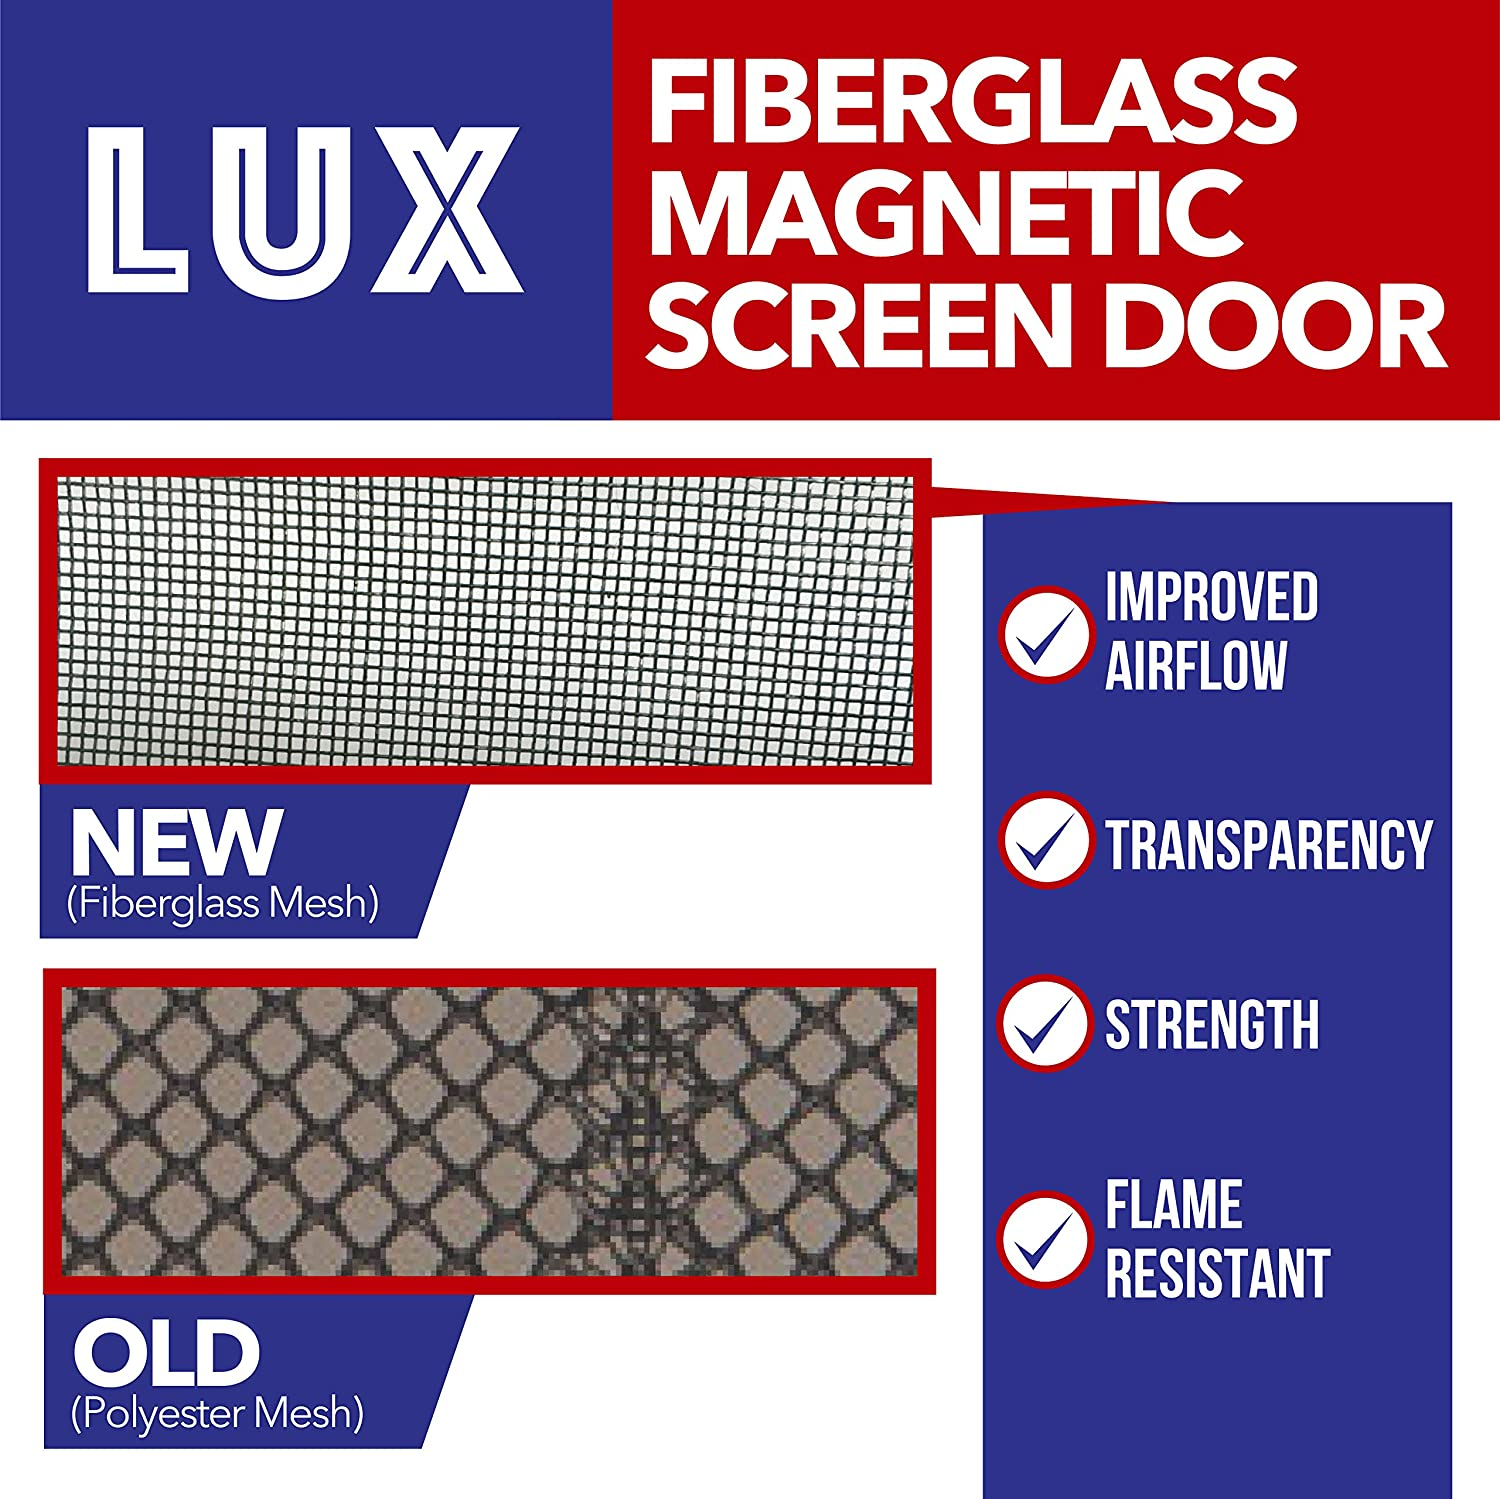 Magnetic screen door new 2017 patent pending design full frame magnetic screen door new 2017 patent pending design full frame velcro fiberglass mesh not polyester this instant retractable bug screen opens and closes vtopaller Image collections